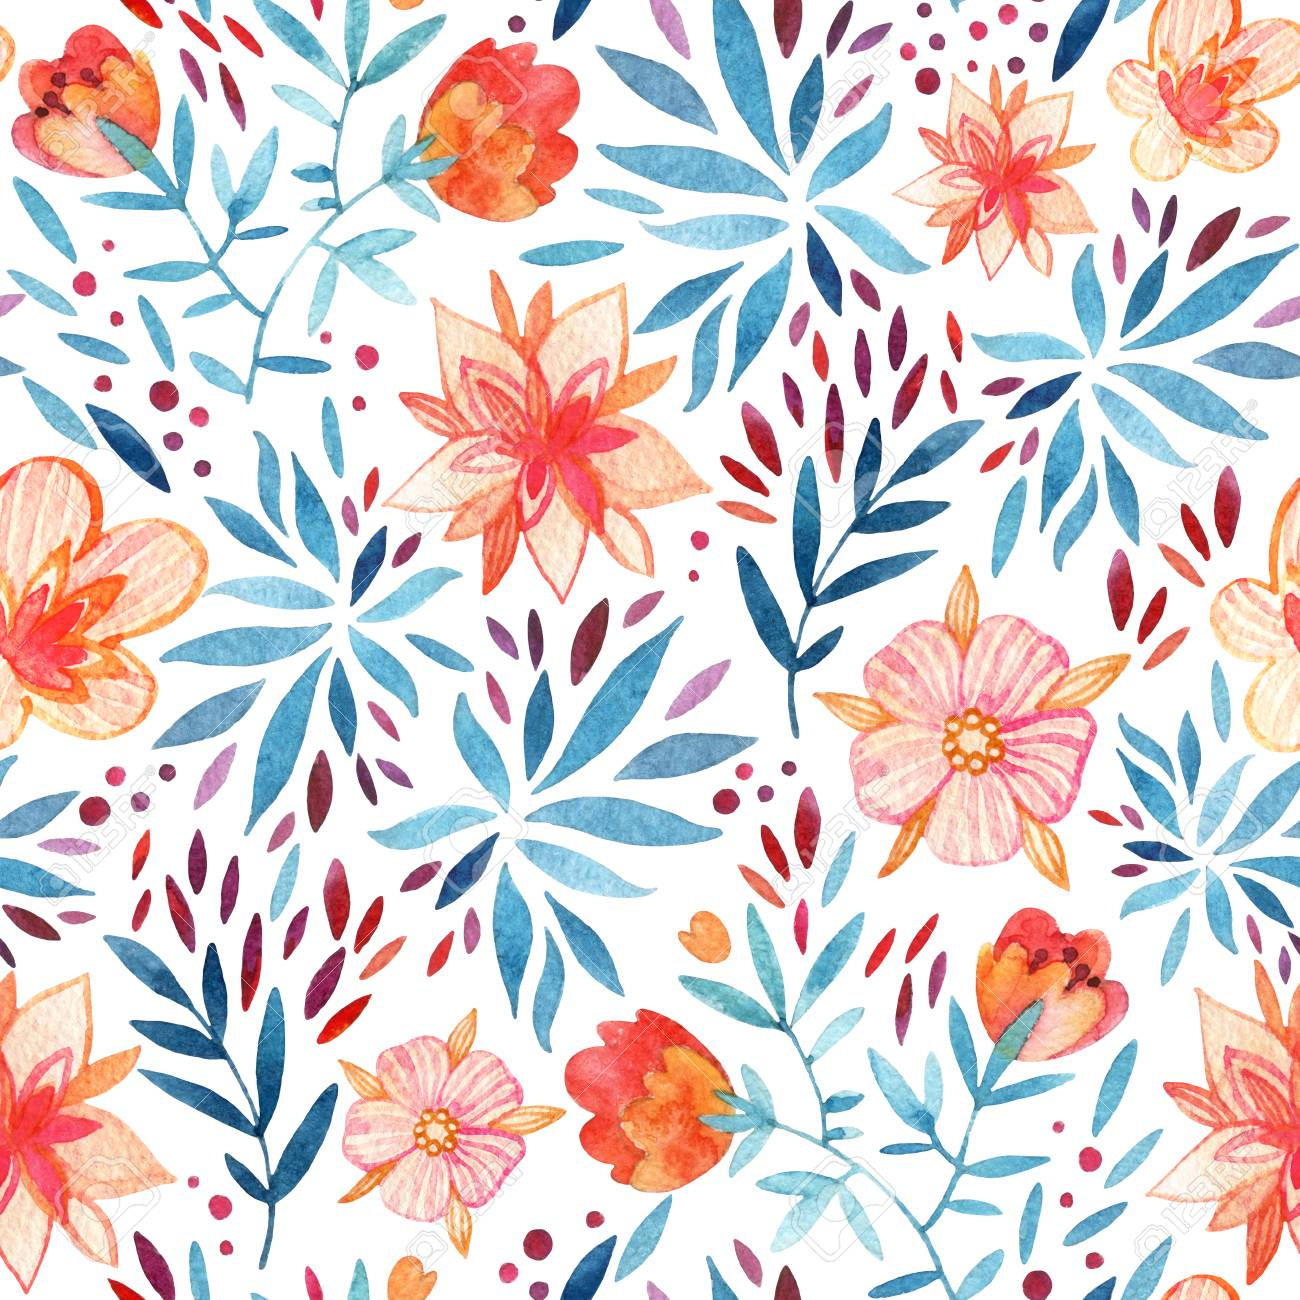 Abstract Cute Watercolor Floral Background Detailed Seamless